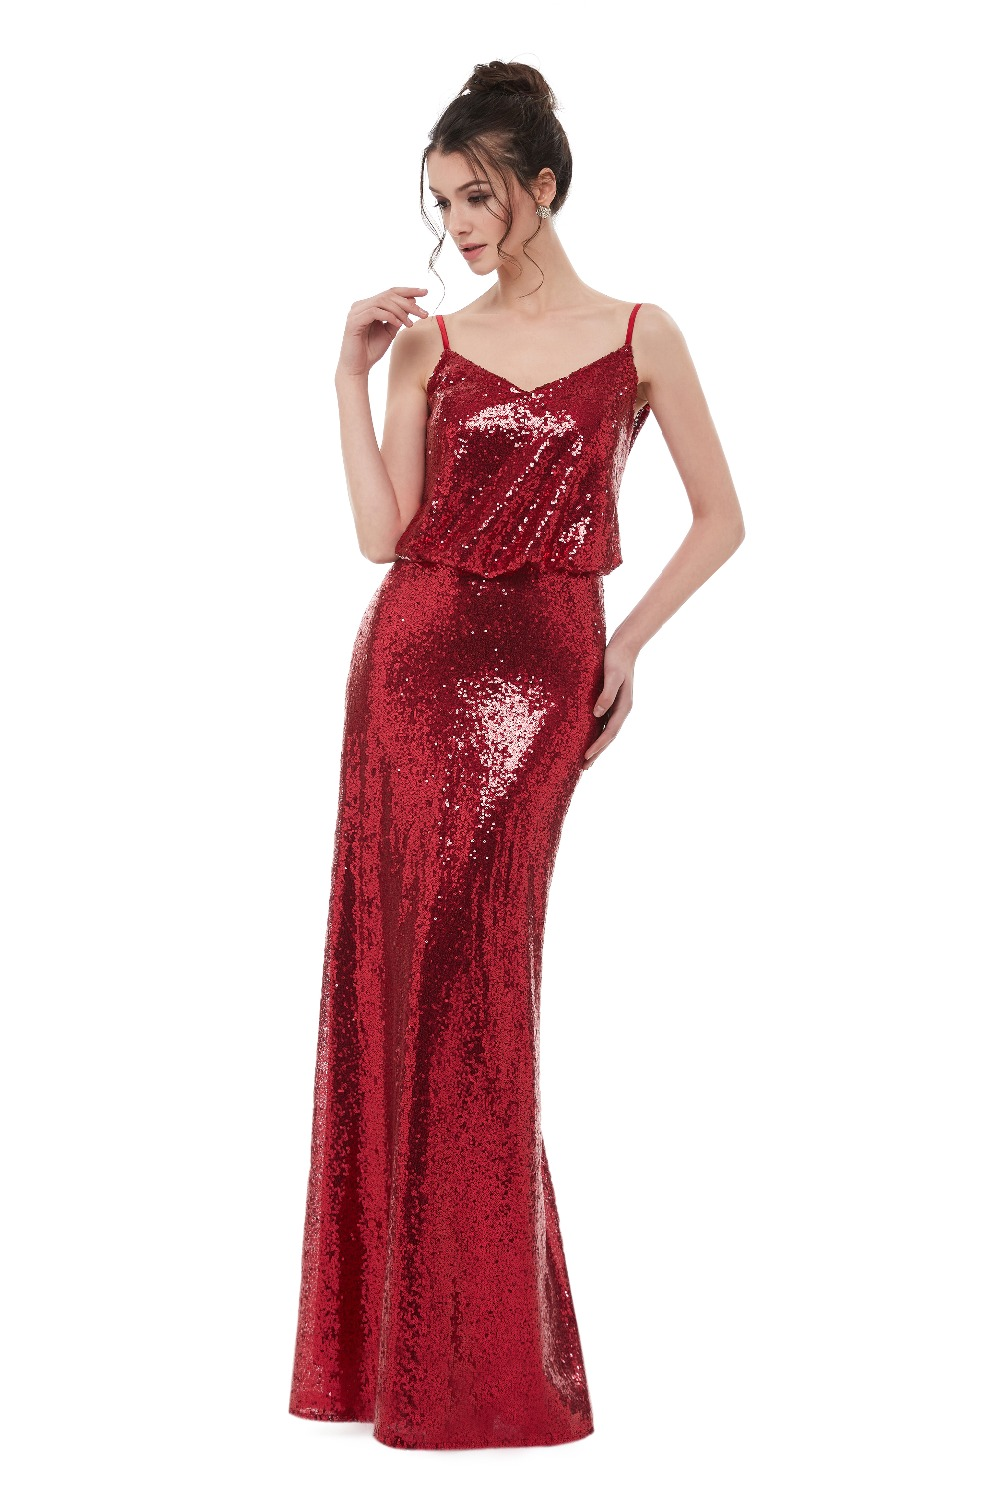 Elegant Wine Red Sequins Spaghetti Straps Long Bridesmaid Dress